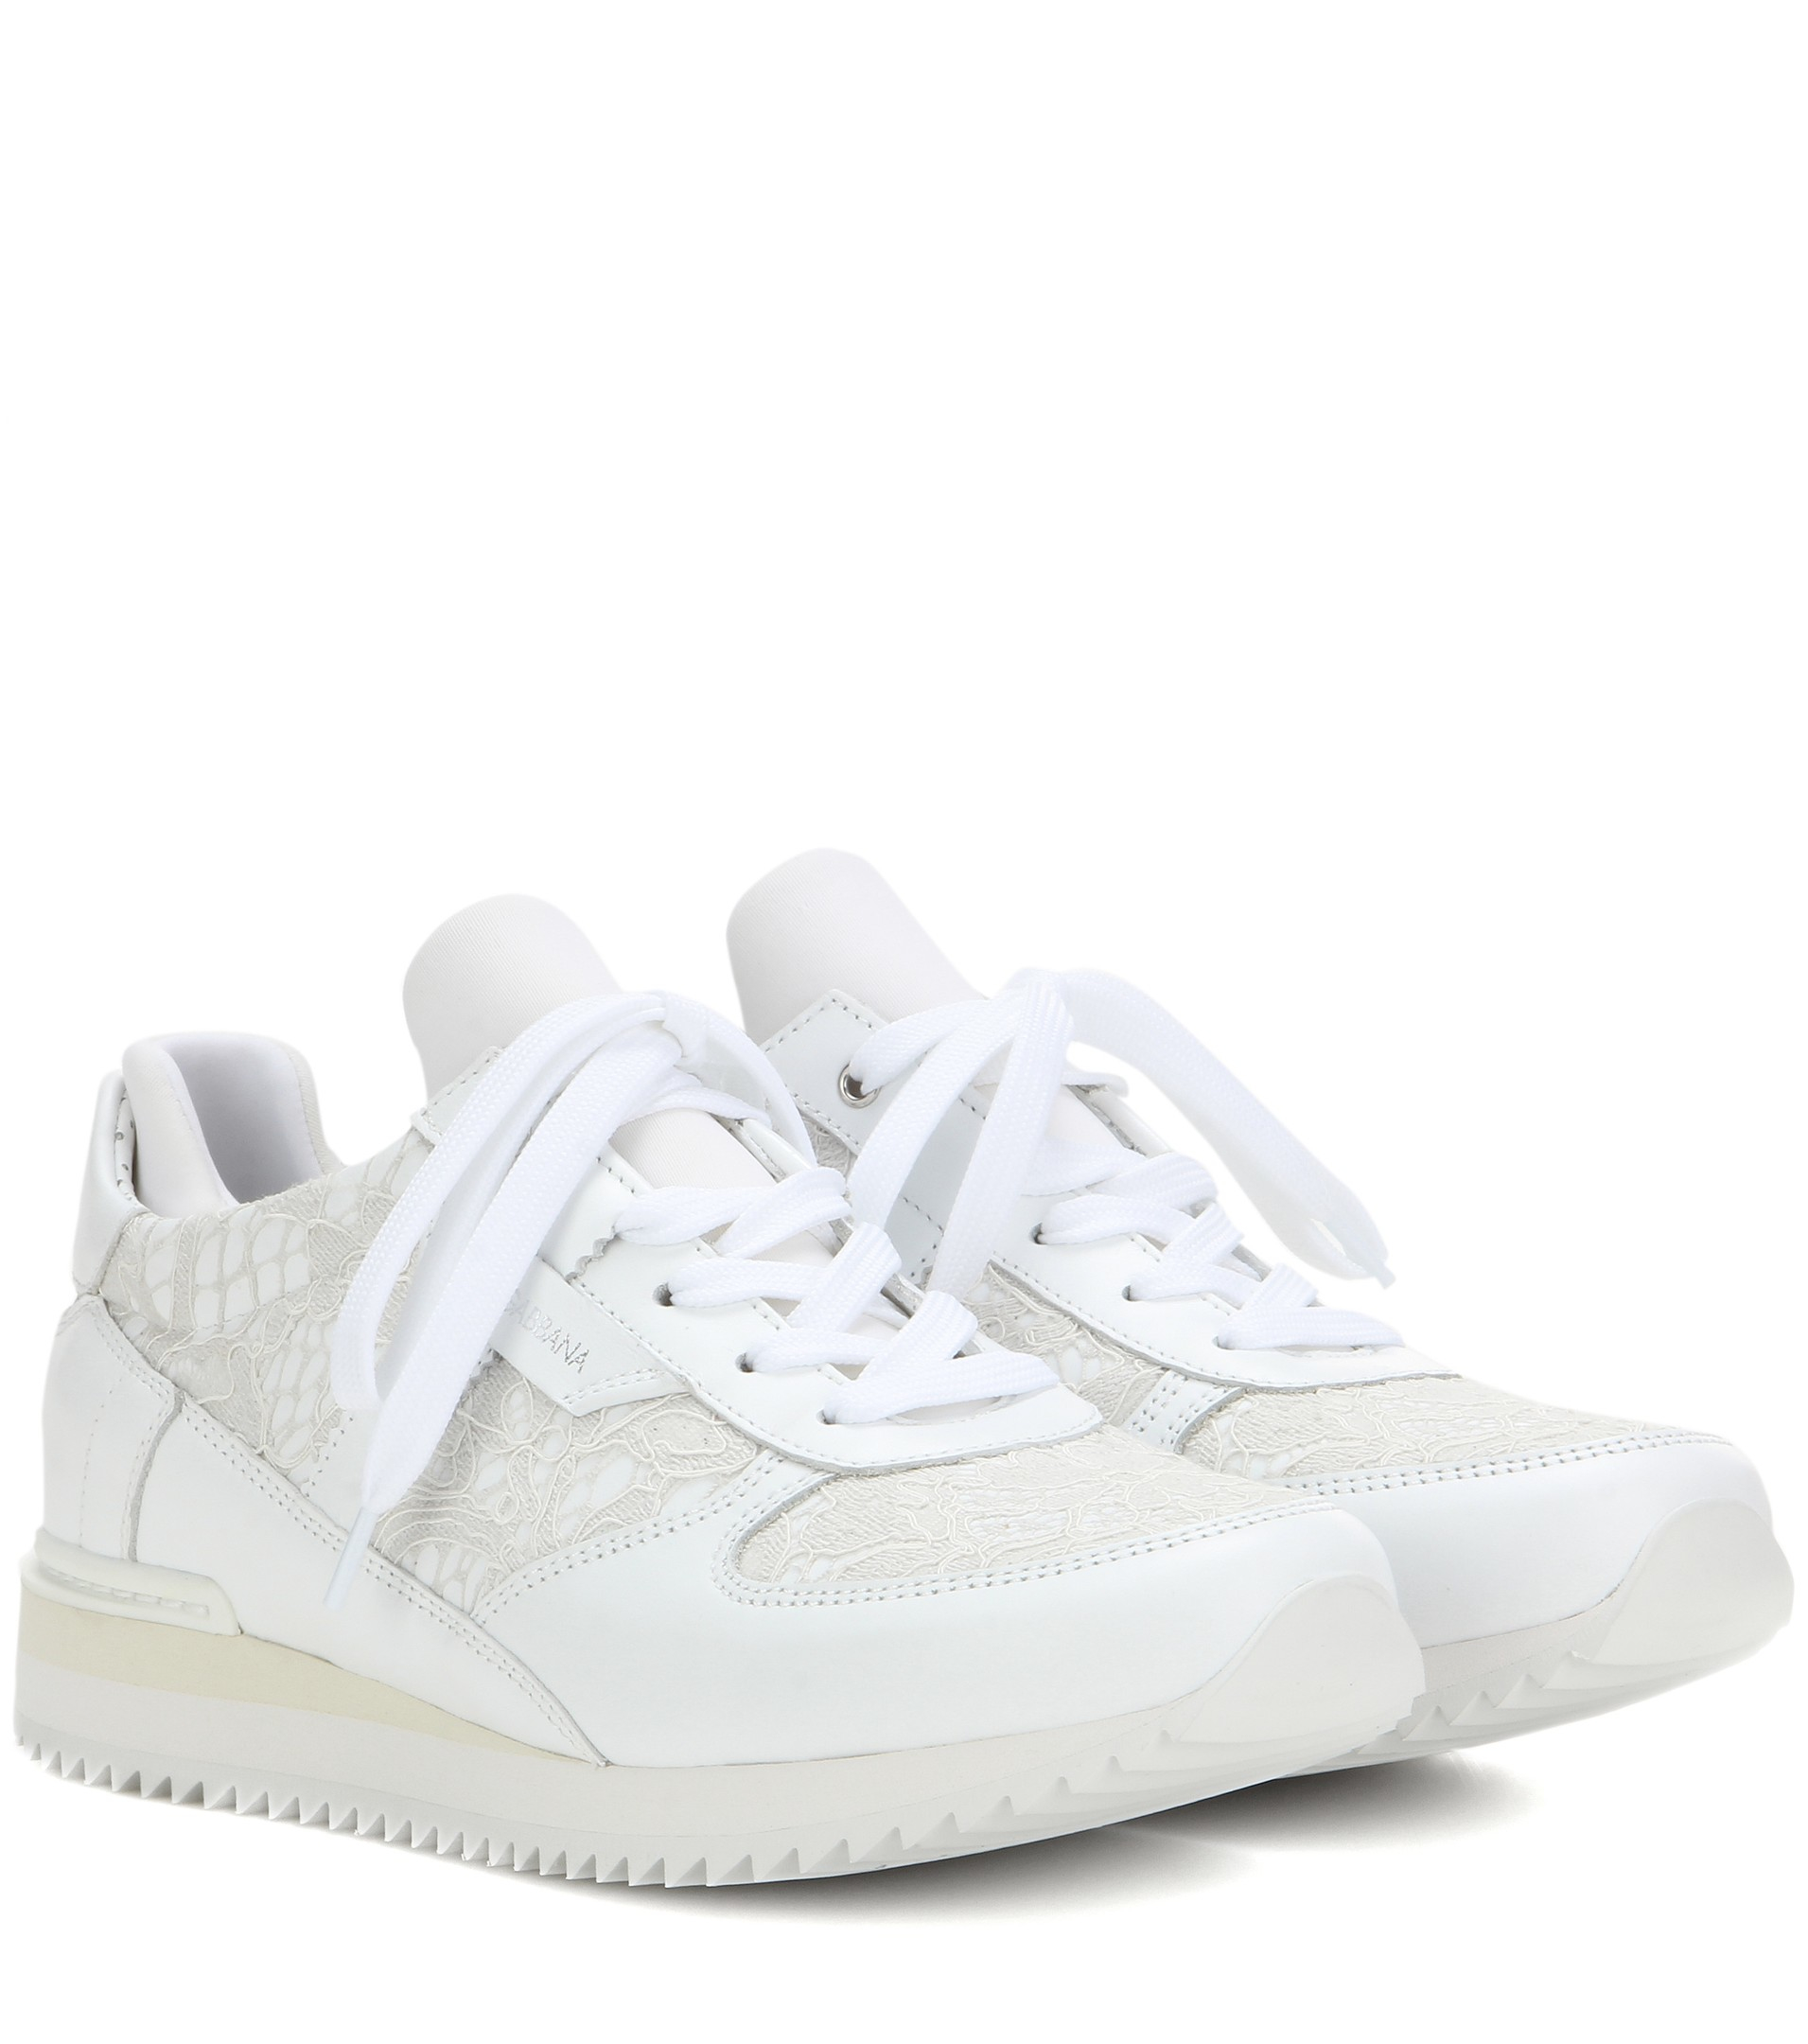 Dolce & Gabbana Lace And Leather Sneakers in White